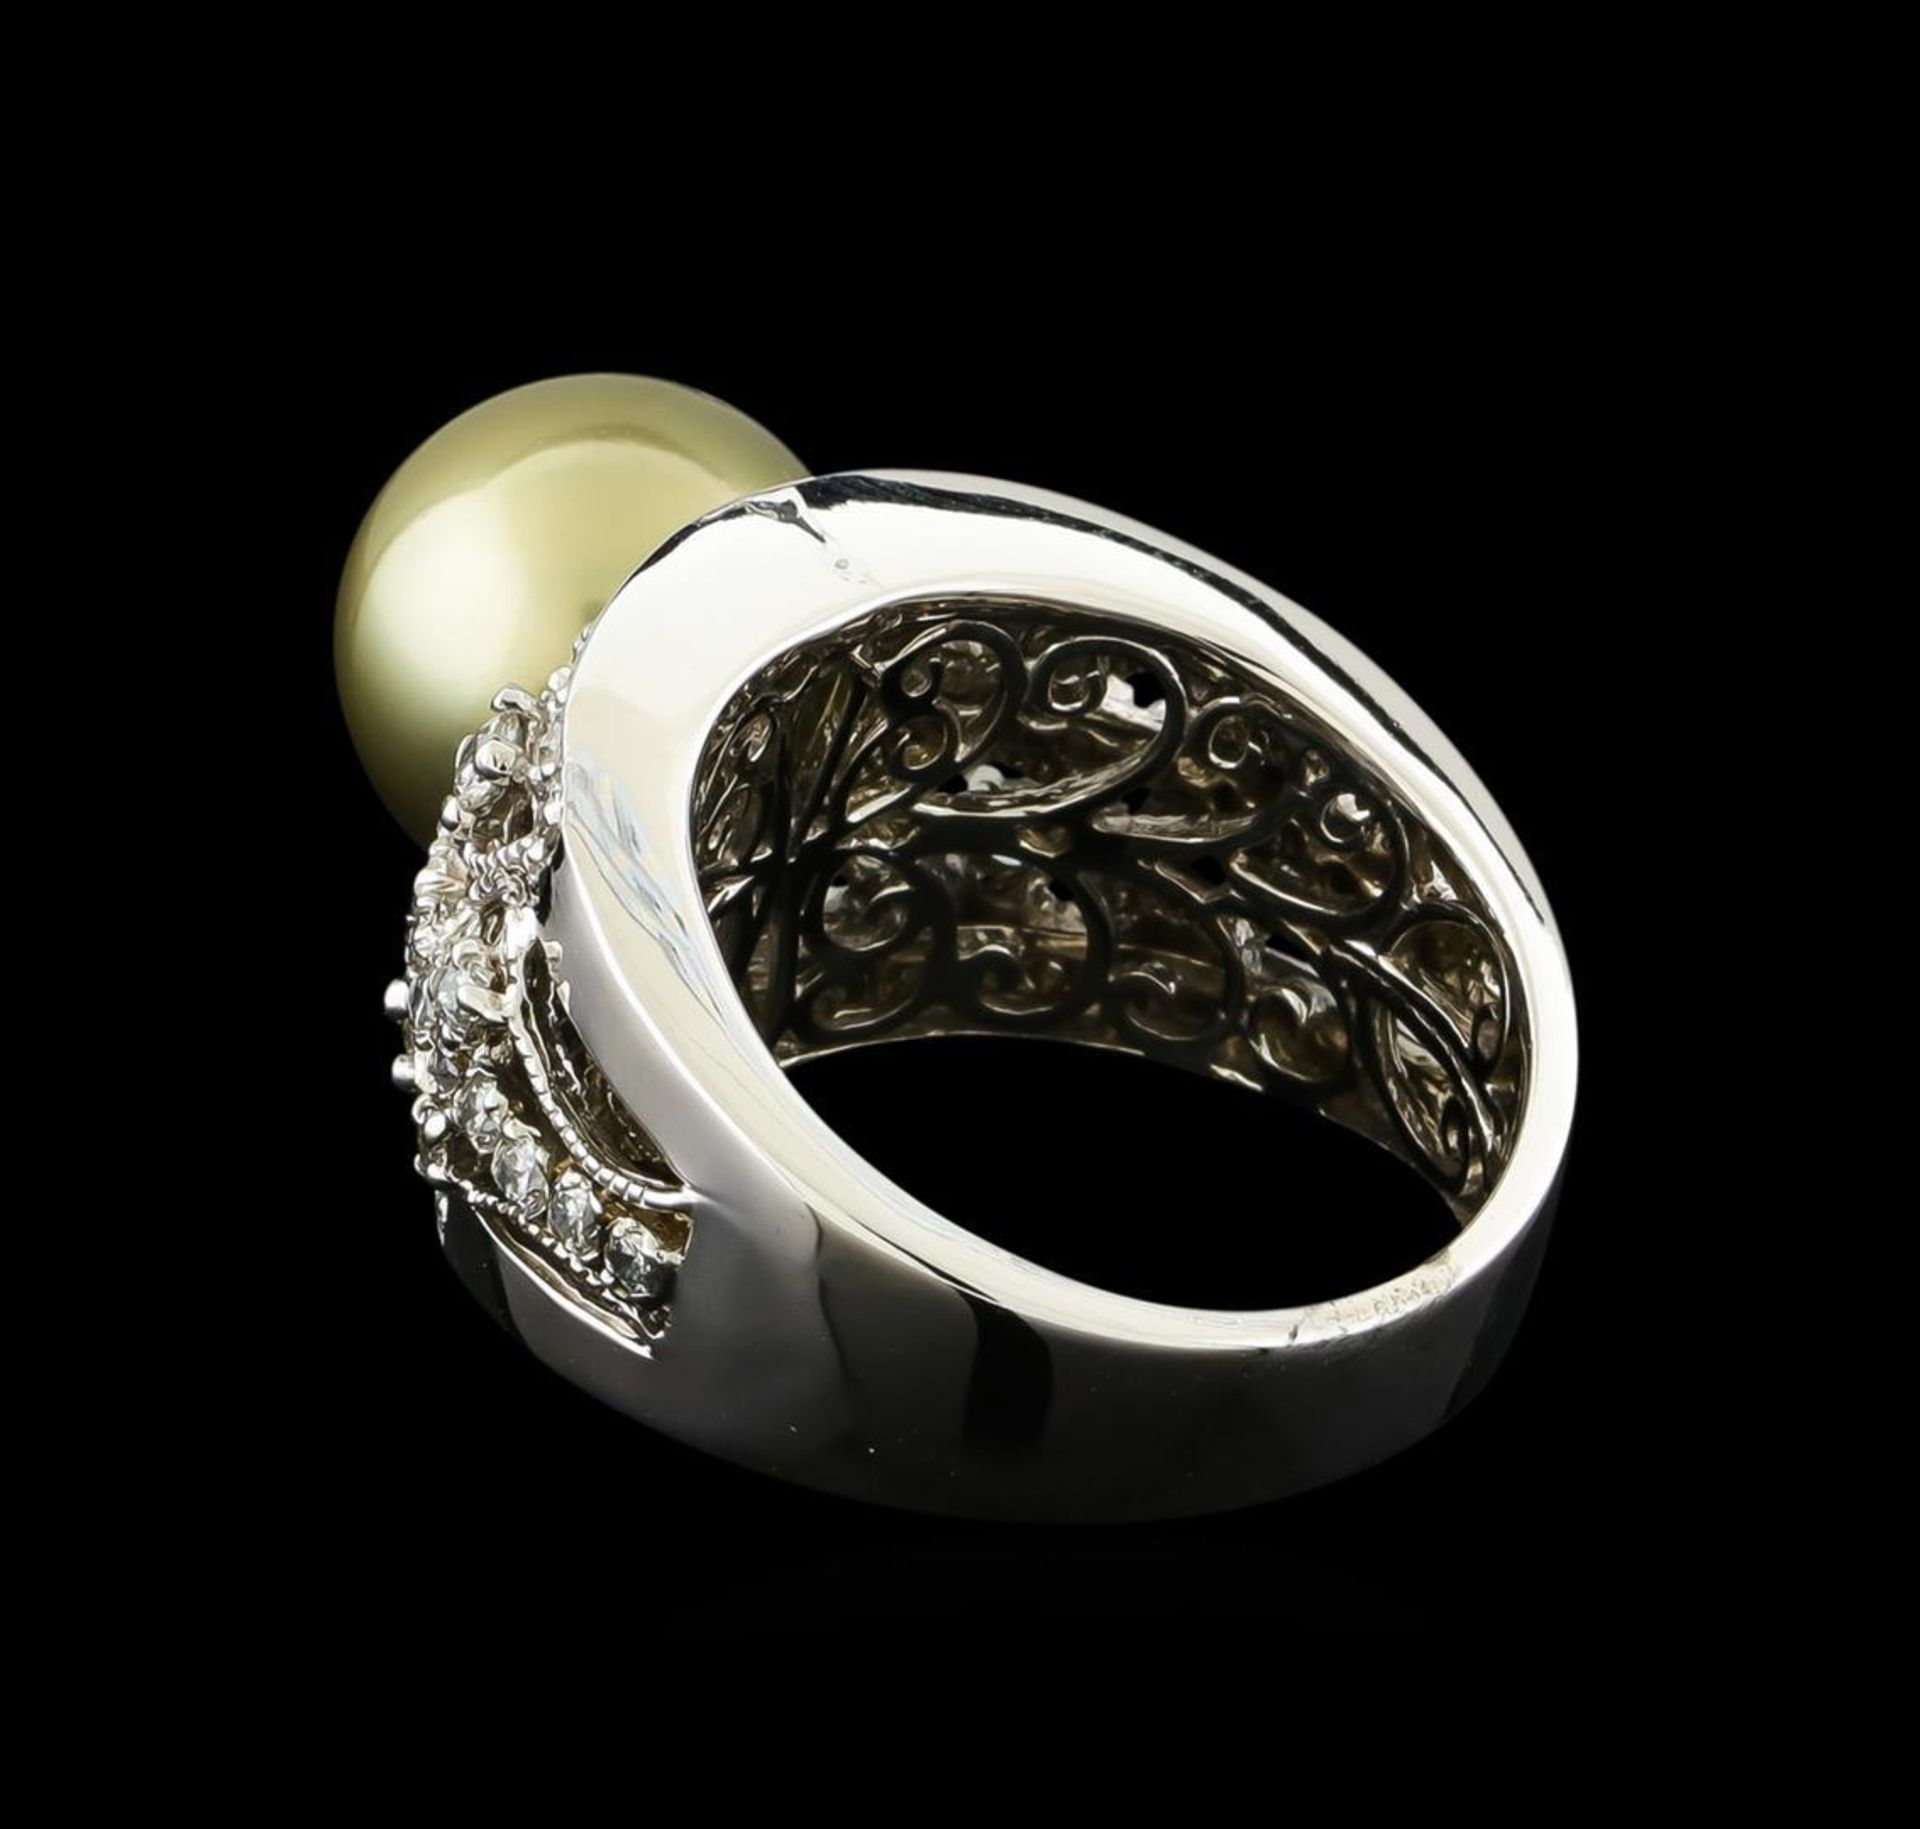 Tahitian Pearl and Diamond Ring - 14KT White Gold - Image 3 of 5